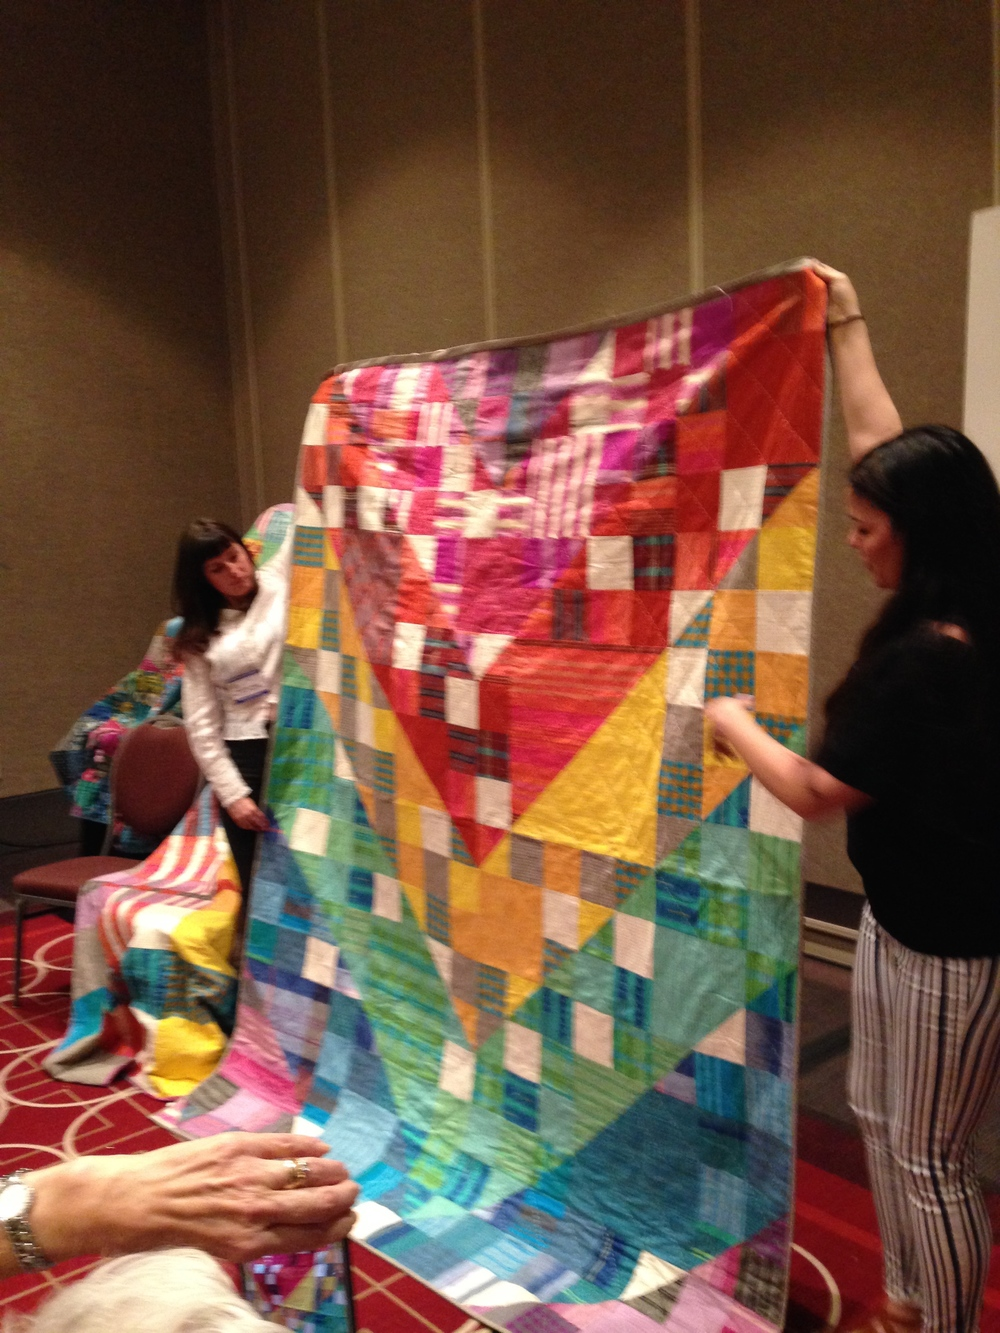 Anna Marie Horner showing new quilt and fabrics